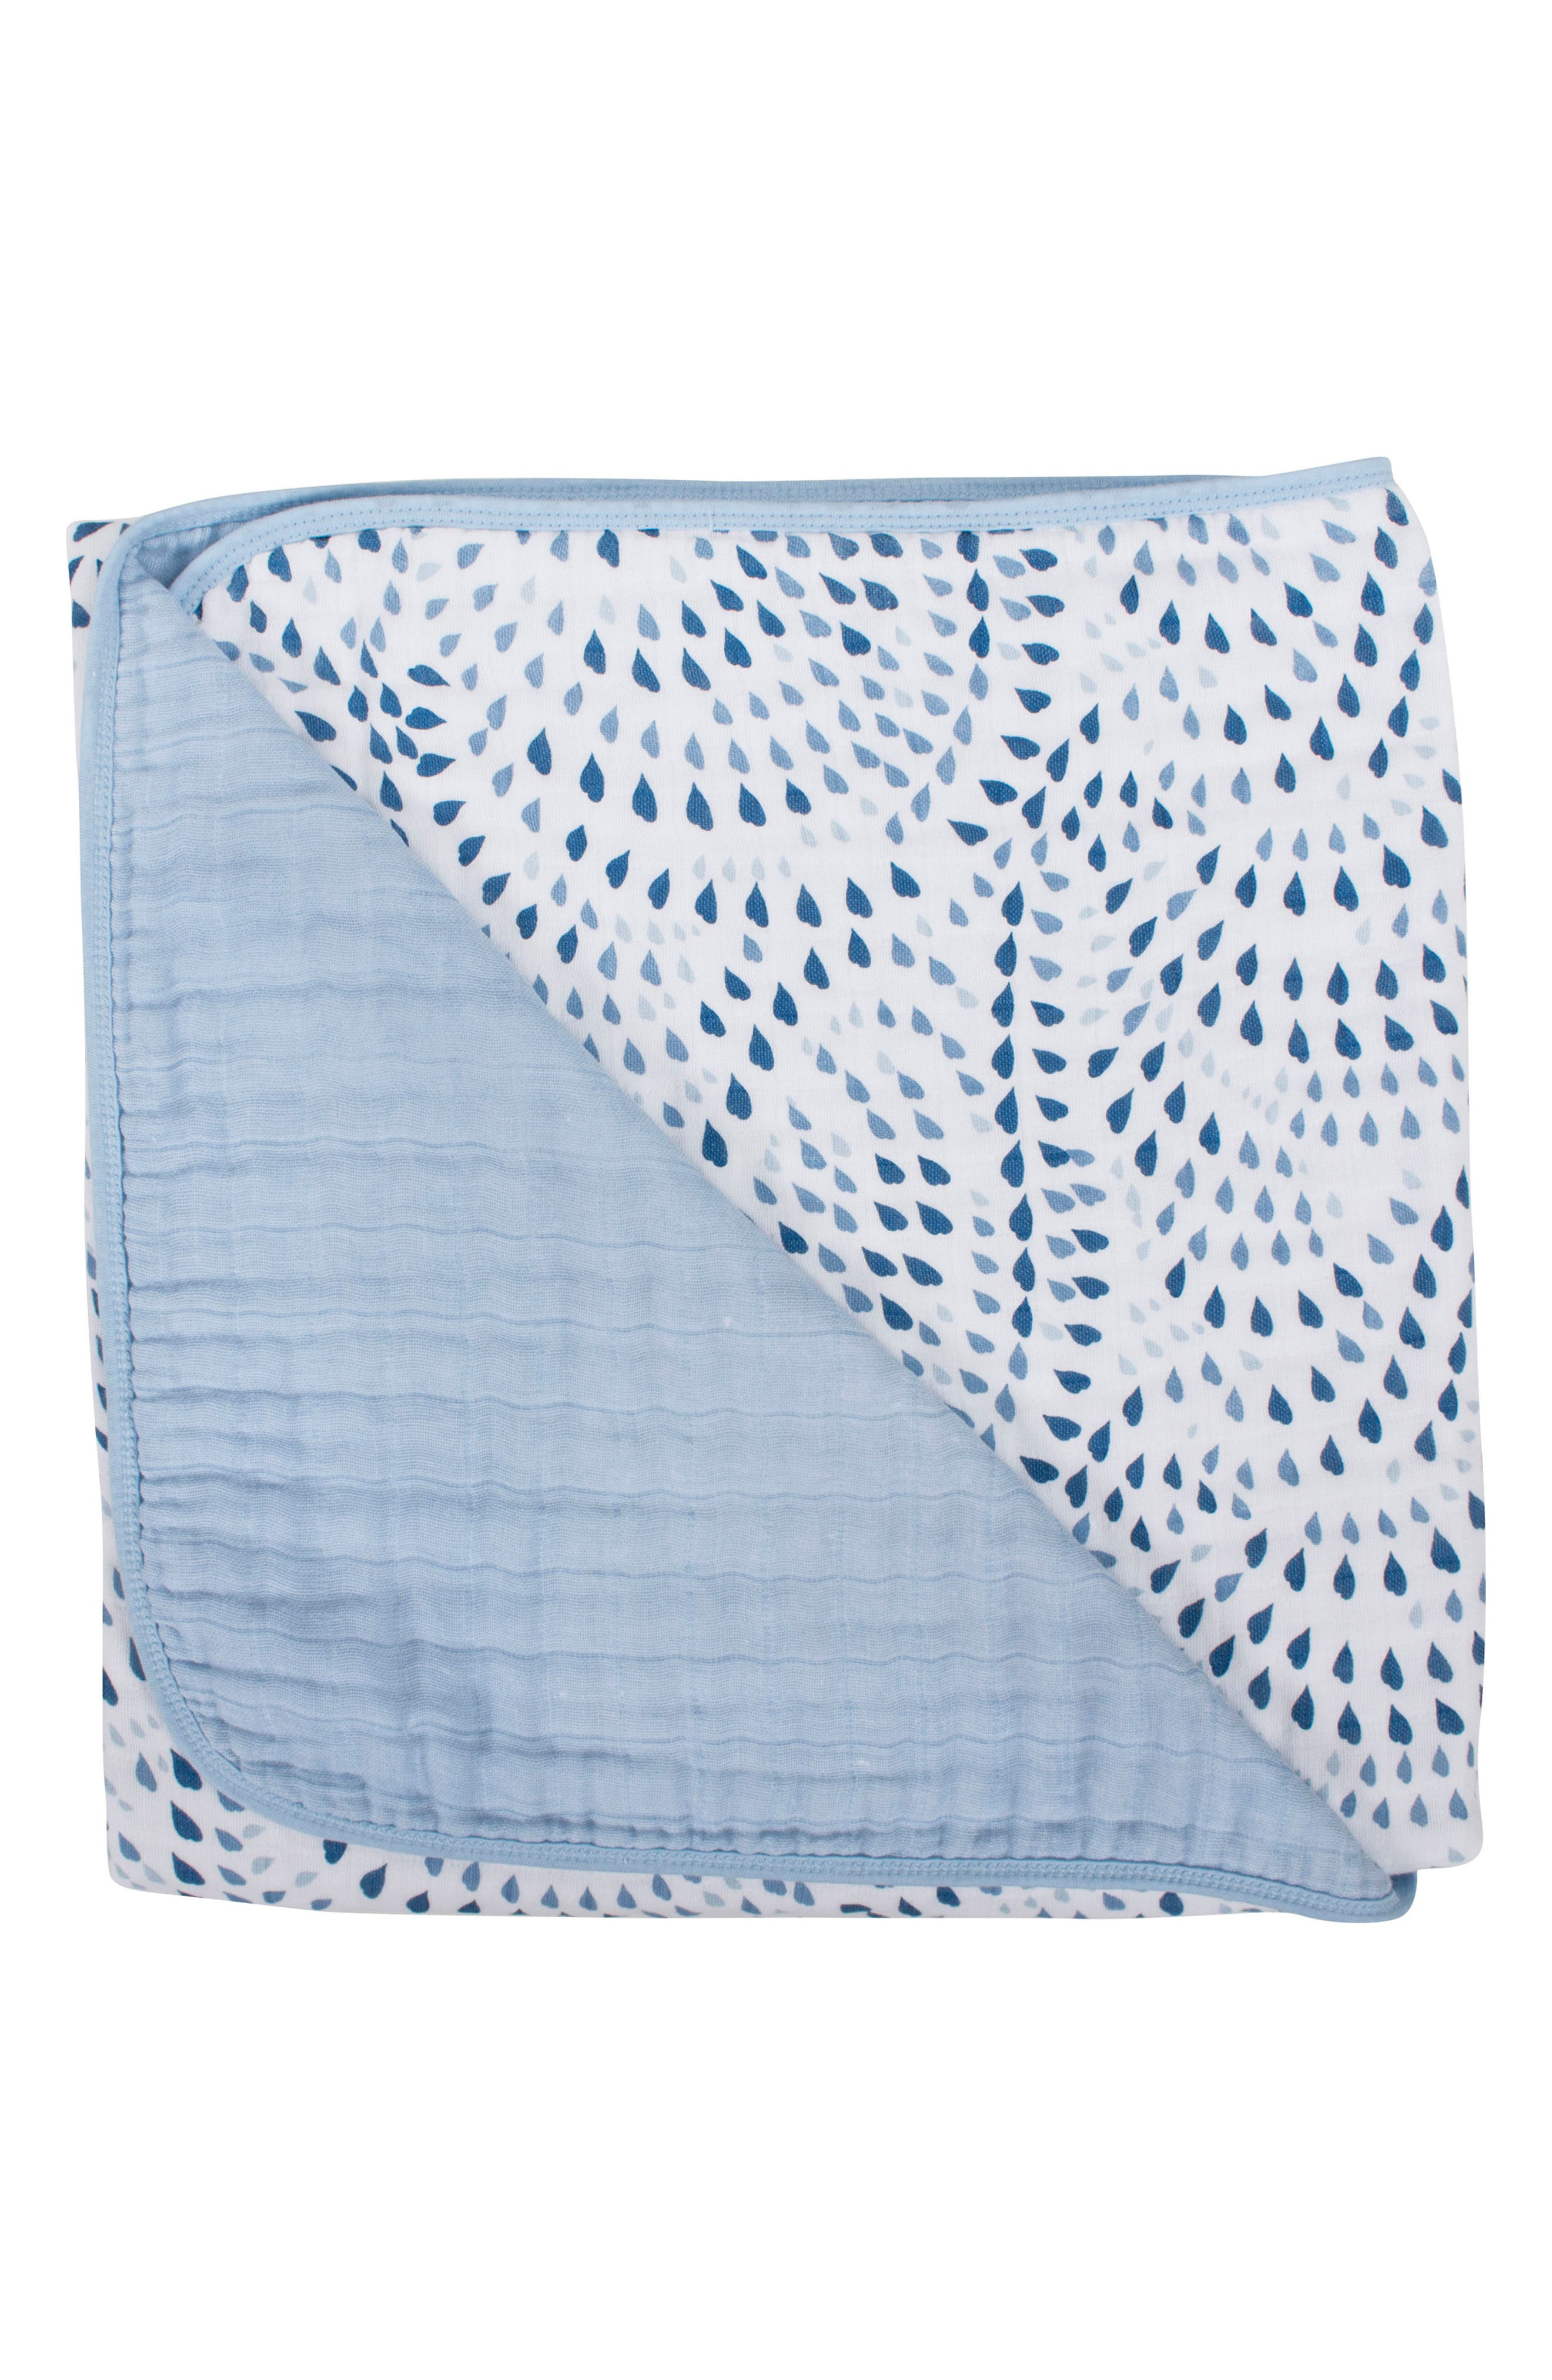 Cotton Muslin Blanket,                         Main,                         color, Serenity And Sky